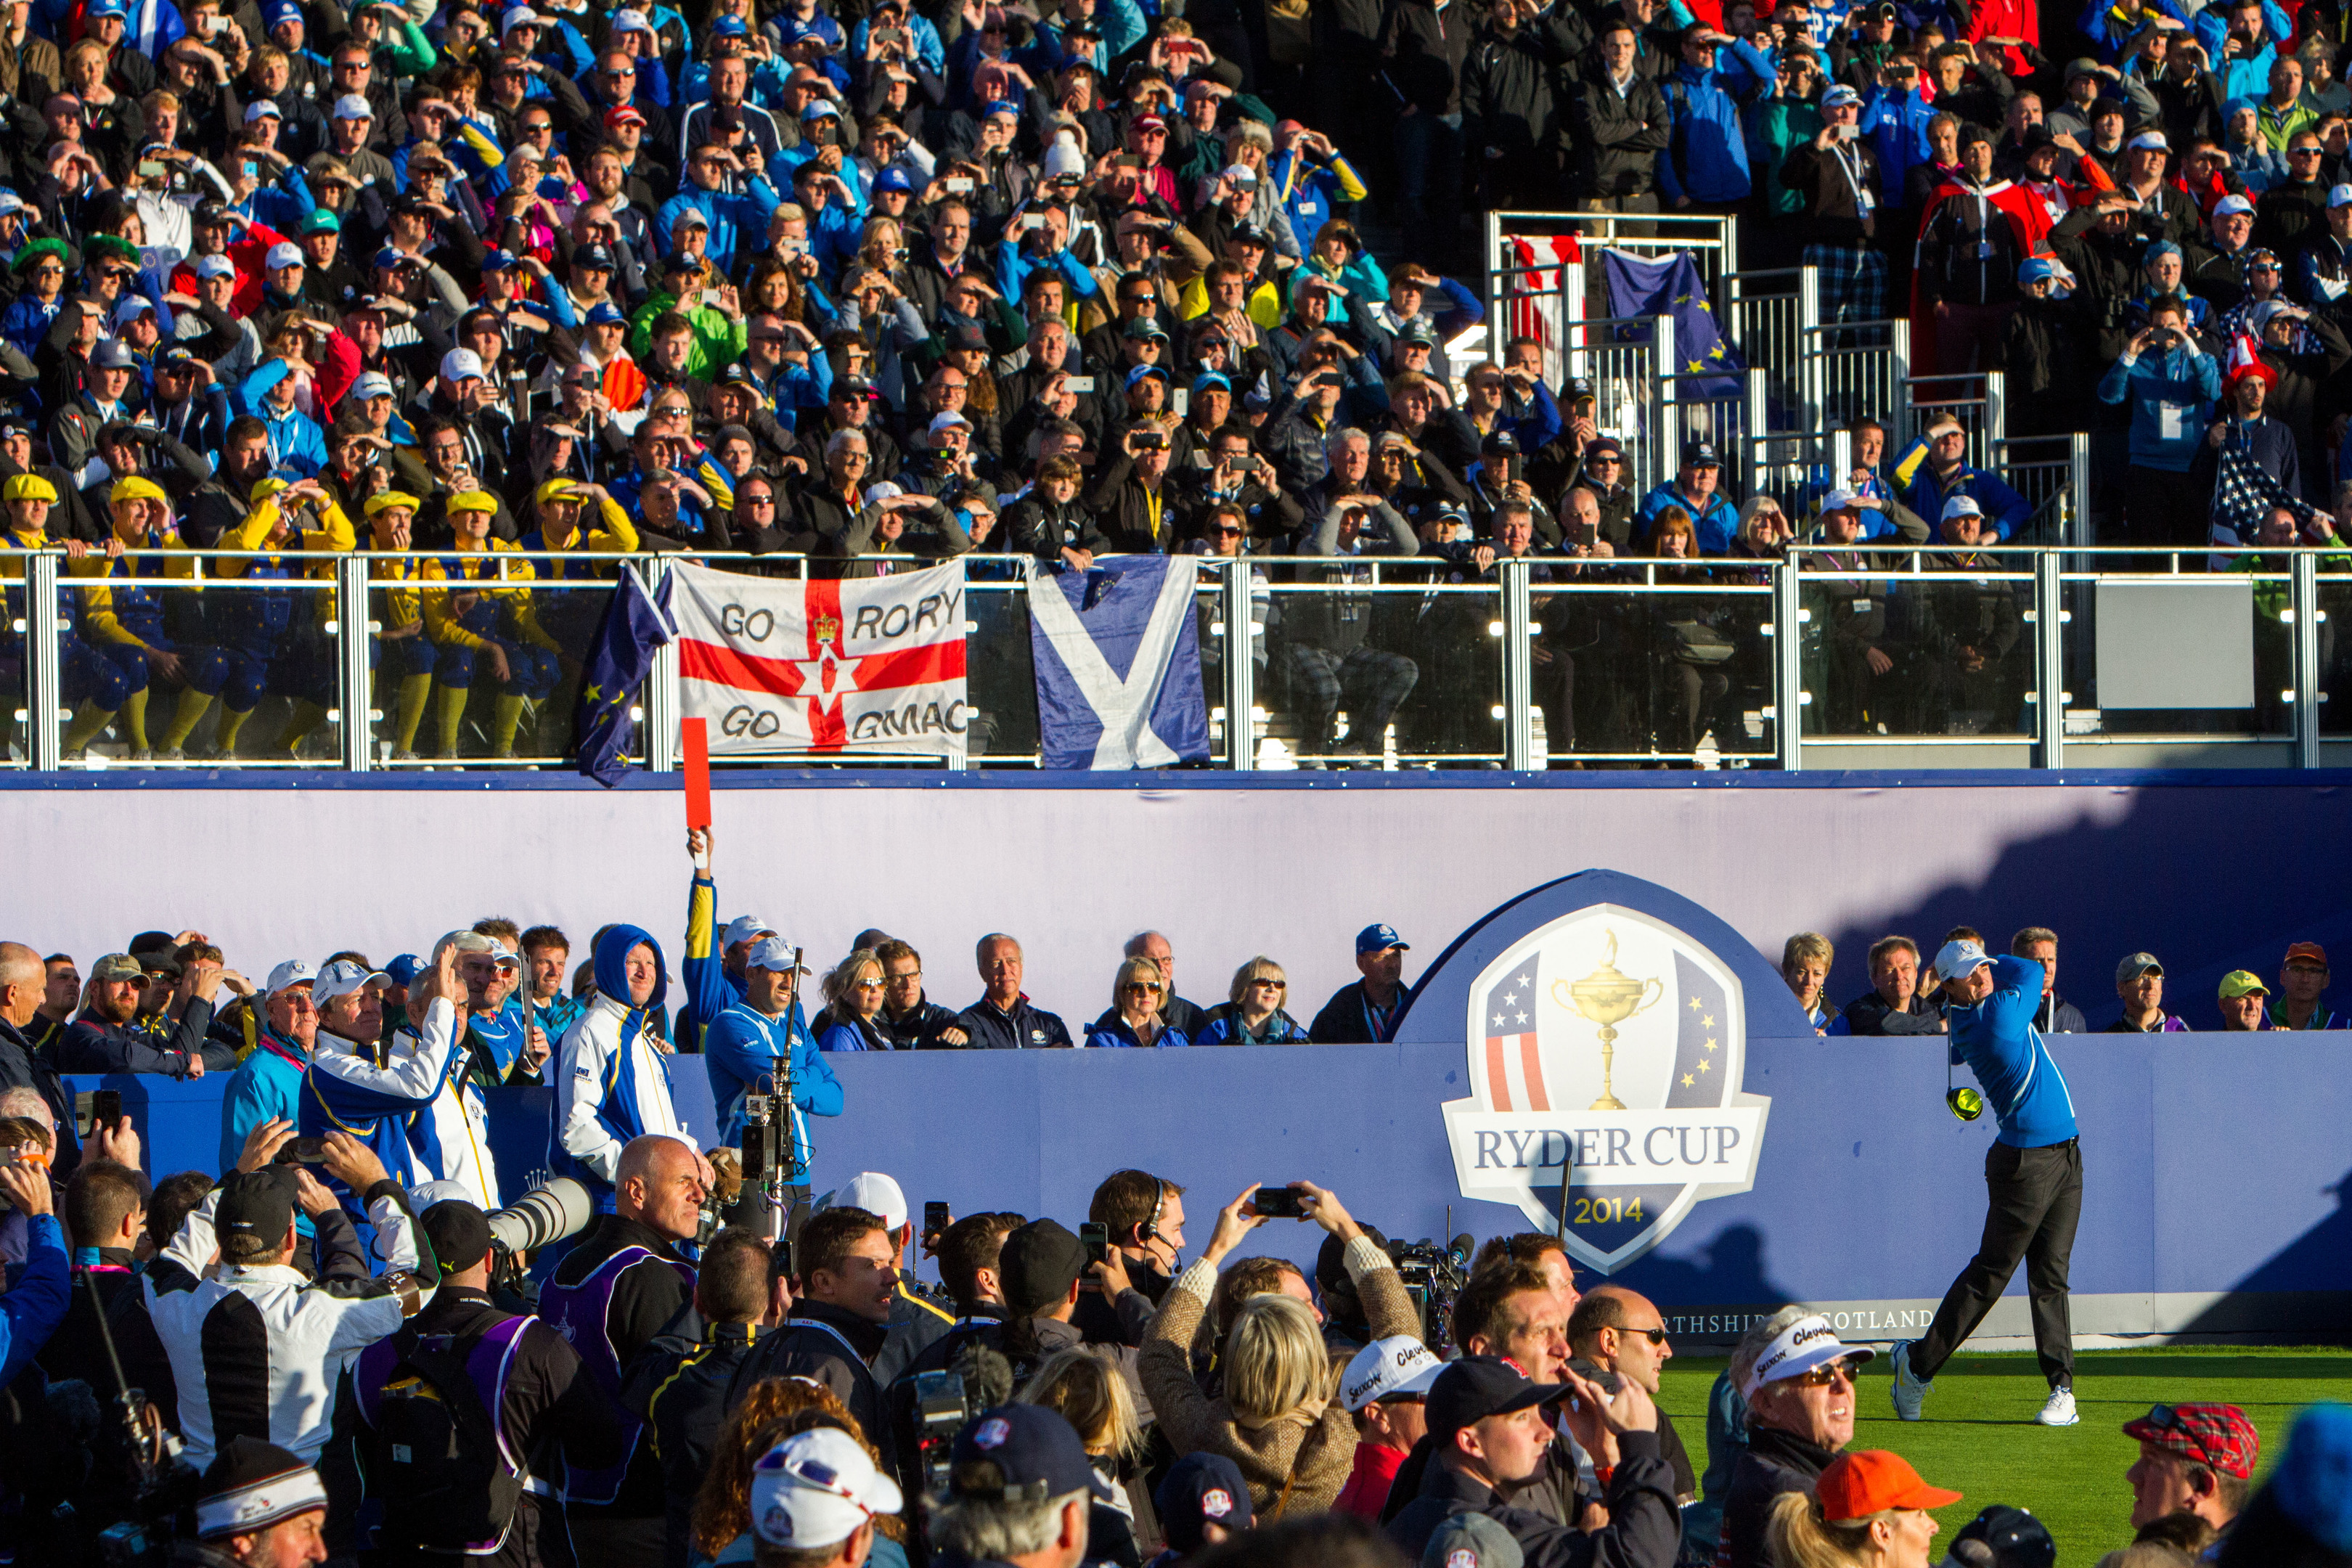 The Ryder Cup in Gleneagles helped boost spending figures.